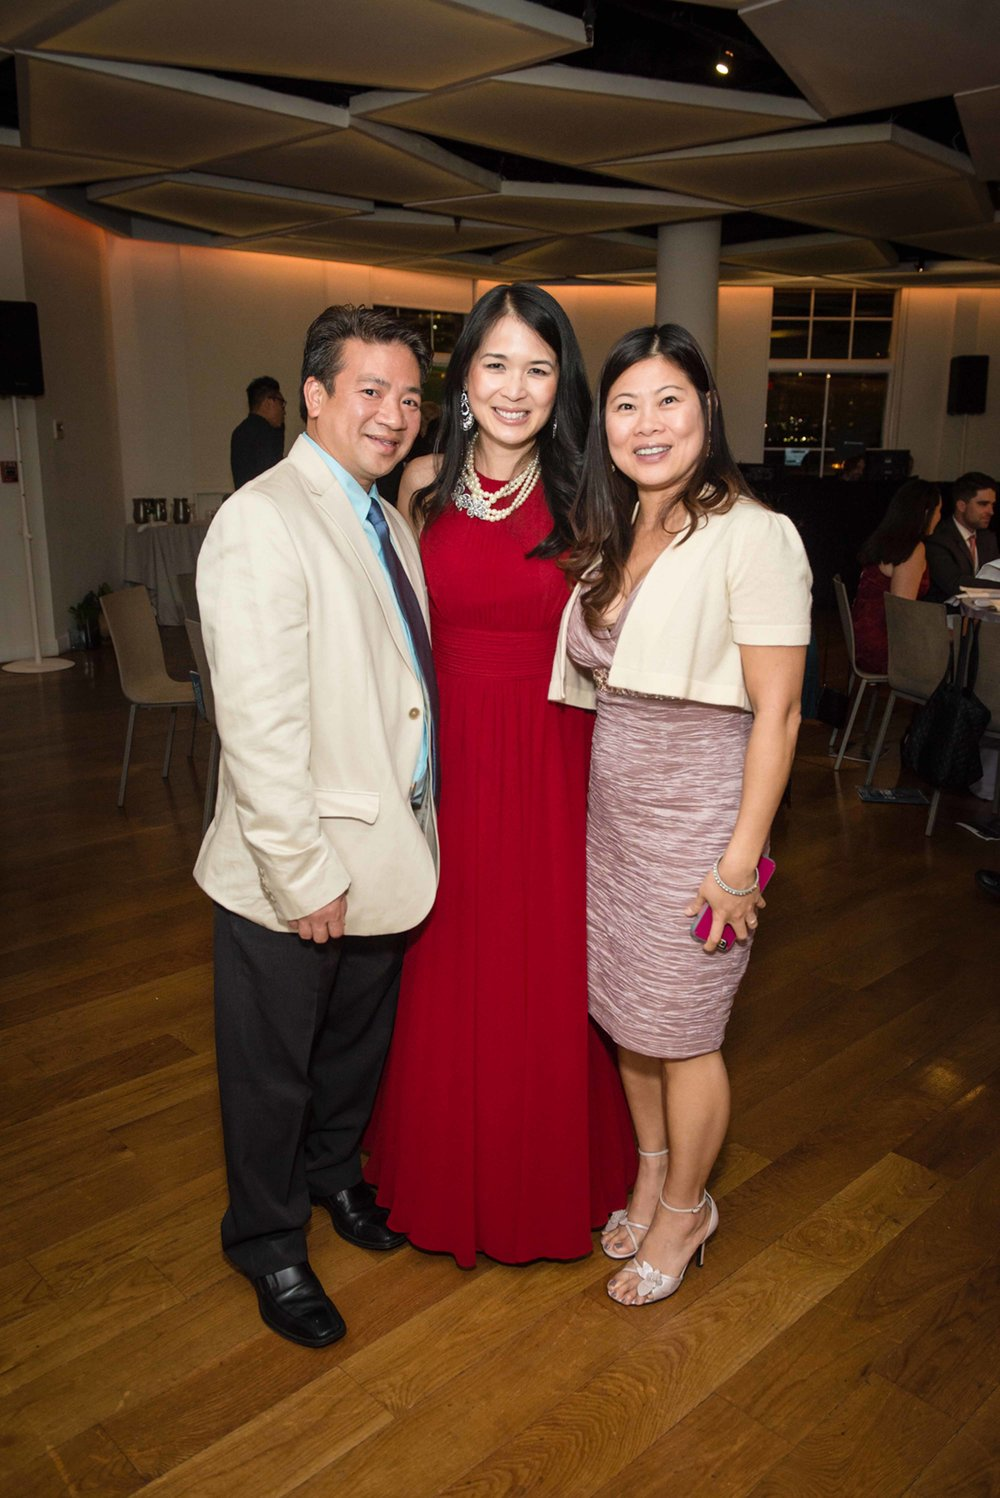 2017-10-21 Zimele USA 6th Annual Gala - Maritime Parc - Jersey City NJ_0213.jpg